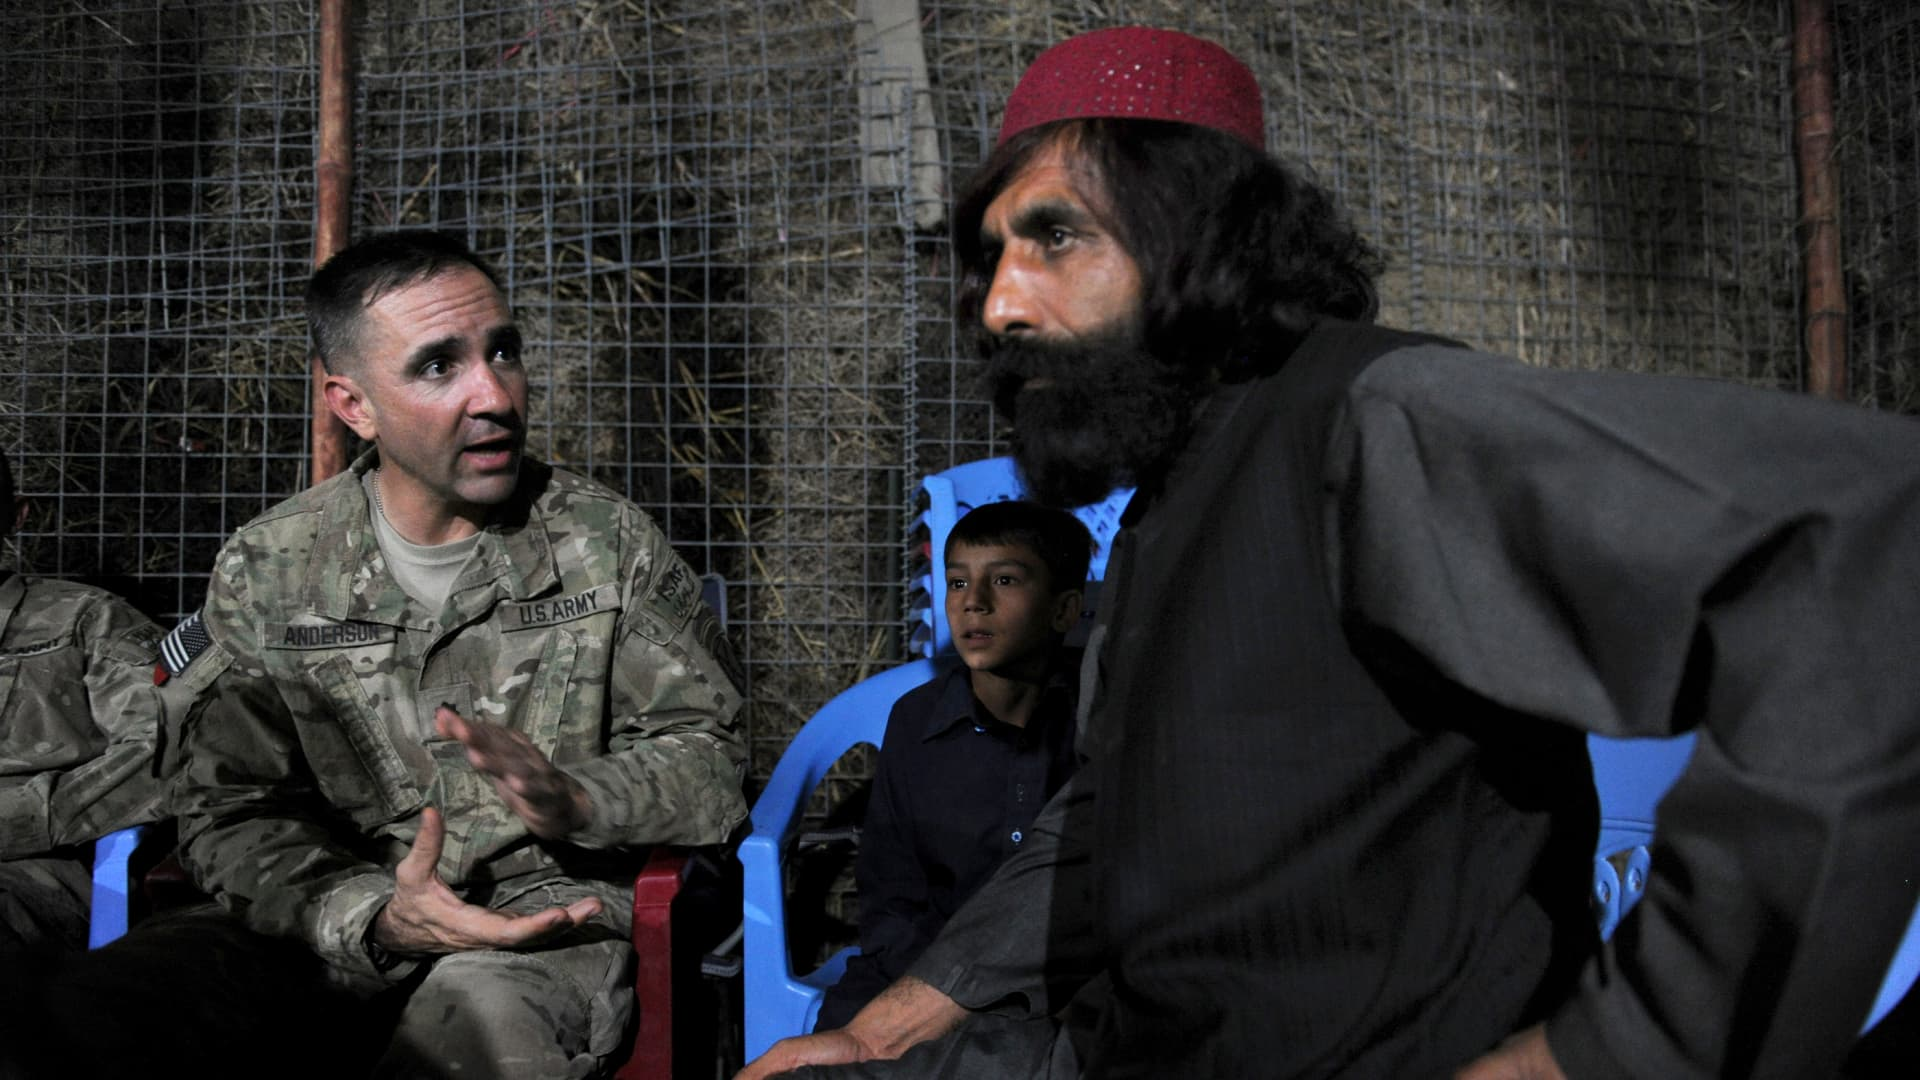 Afghan warlord Haji Tor Gani (R), hosts an iftar reception for US military officials belonging to 2nd Battalion, 87th Infantry Regiment, 3rd Brigade Combat Team, led by Lieutenant Colonel Gregory Anderson (L) in observance of Islam's holy month of Ramadan, at Tor Gani's highly secured compound in a village at Zahri distict in Afghanistan's southern Kandahar province, on August 11, 2011.